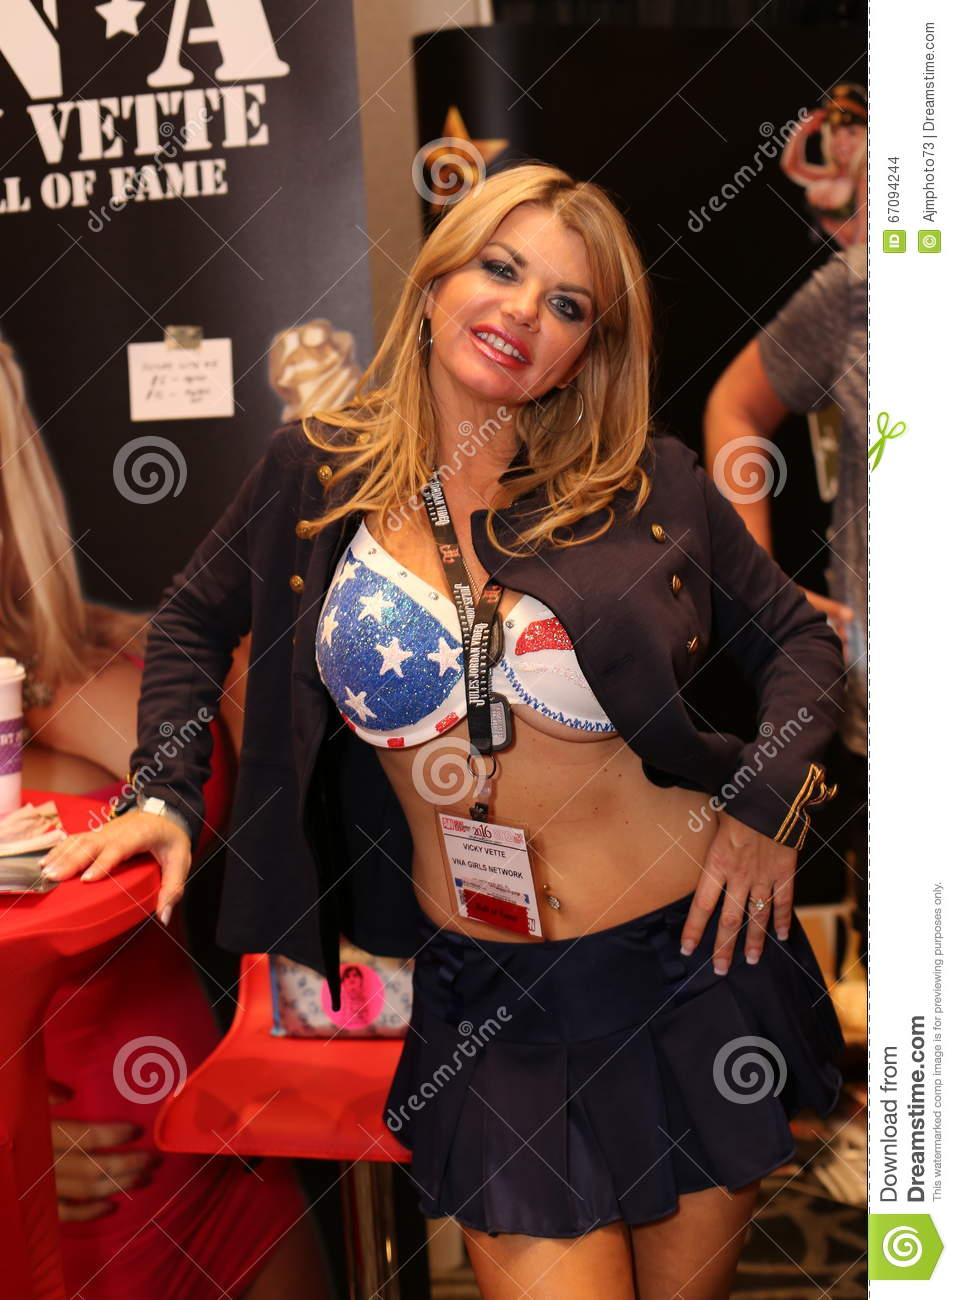 image Strip show erotic expo